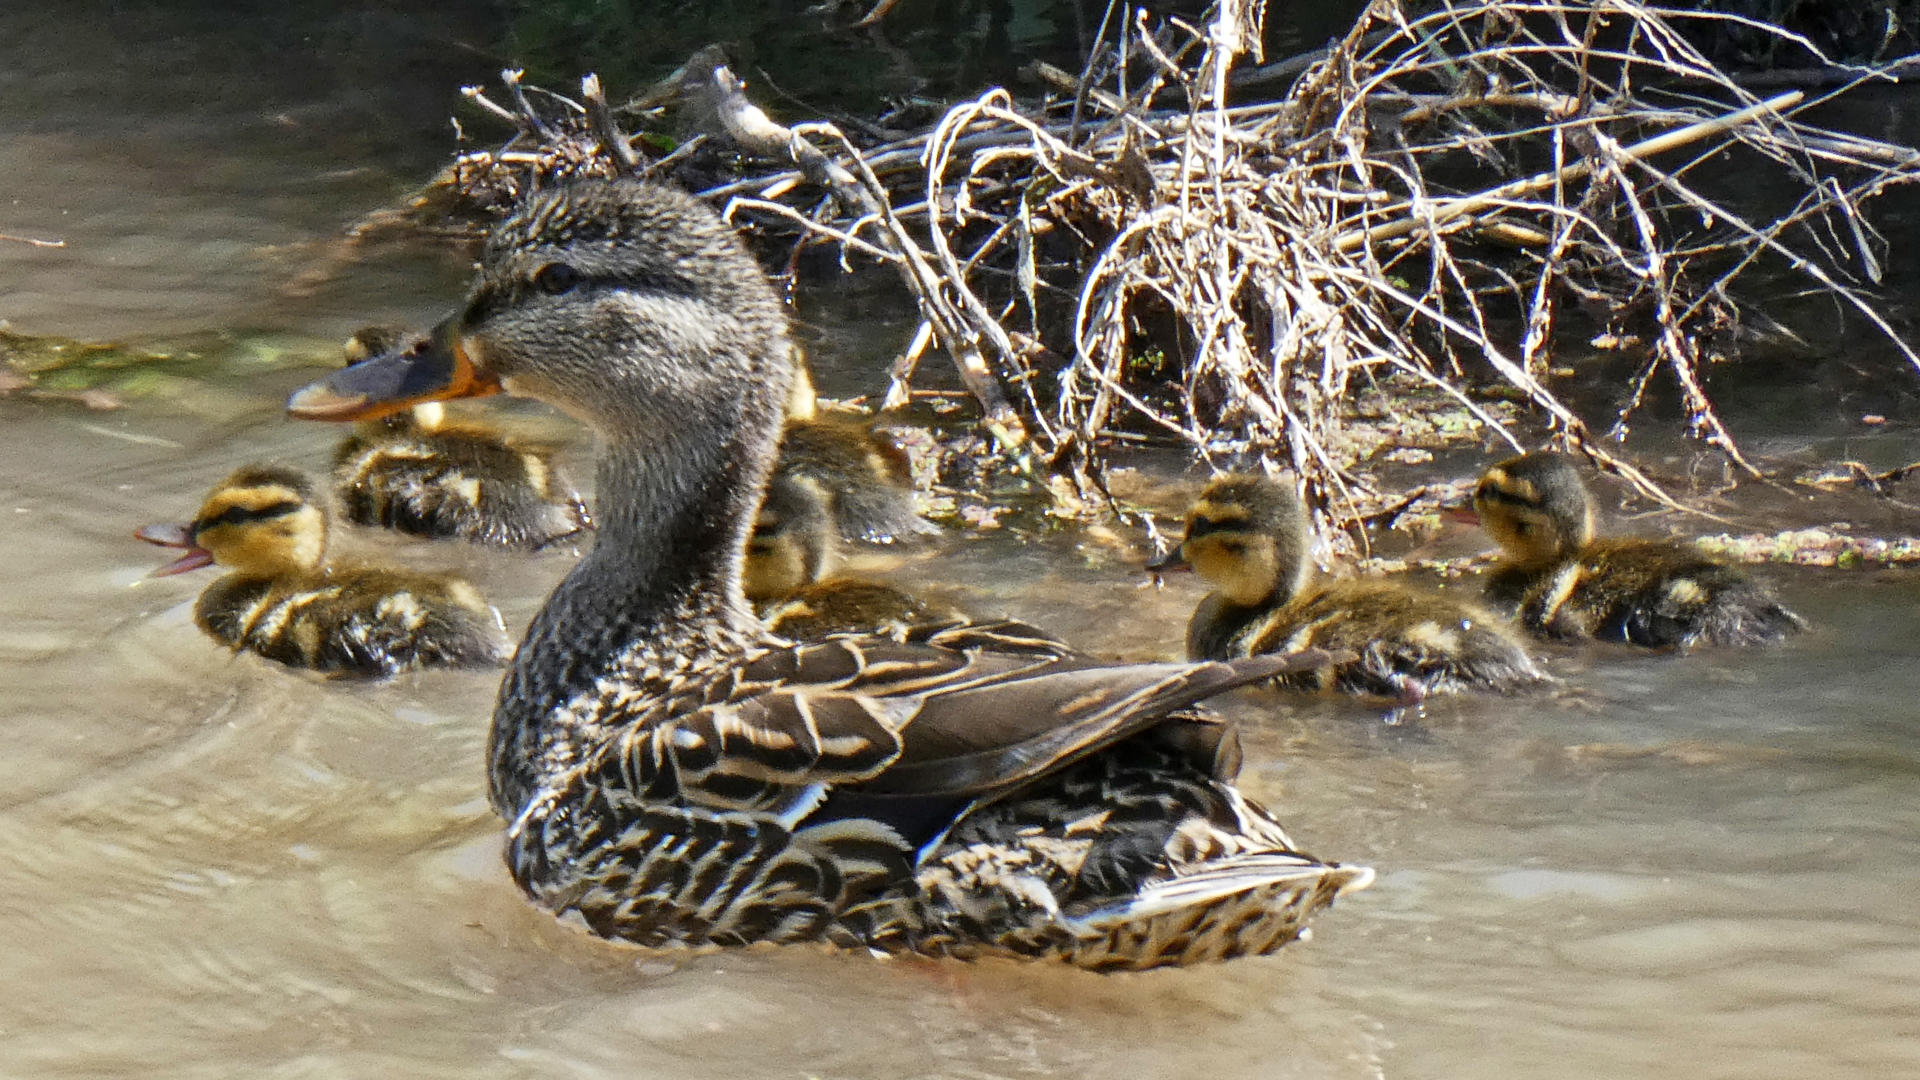 Female with ducklings, Albuquerque, May 2021